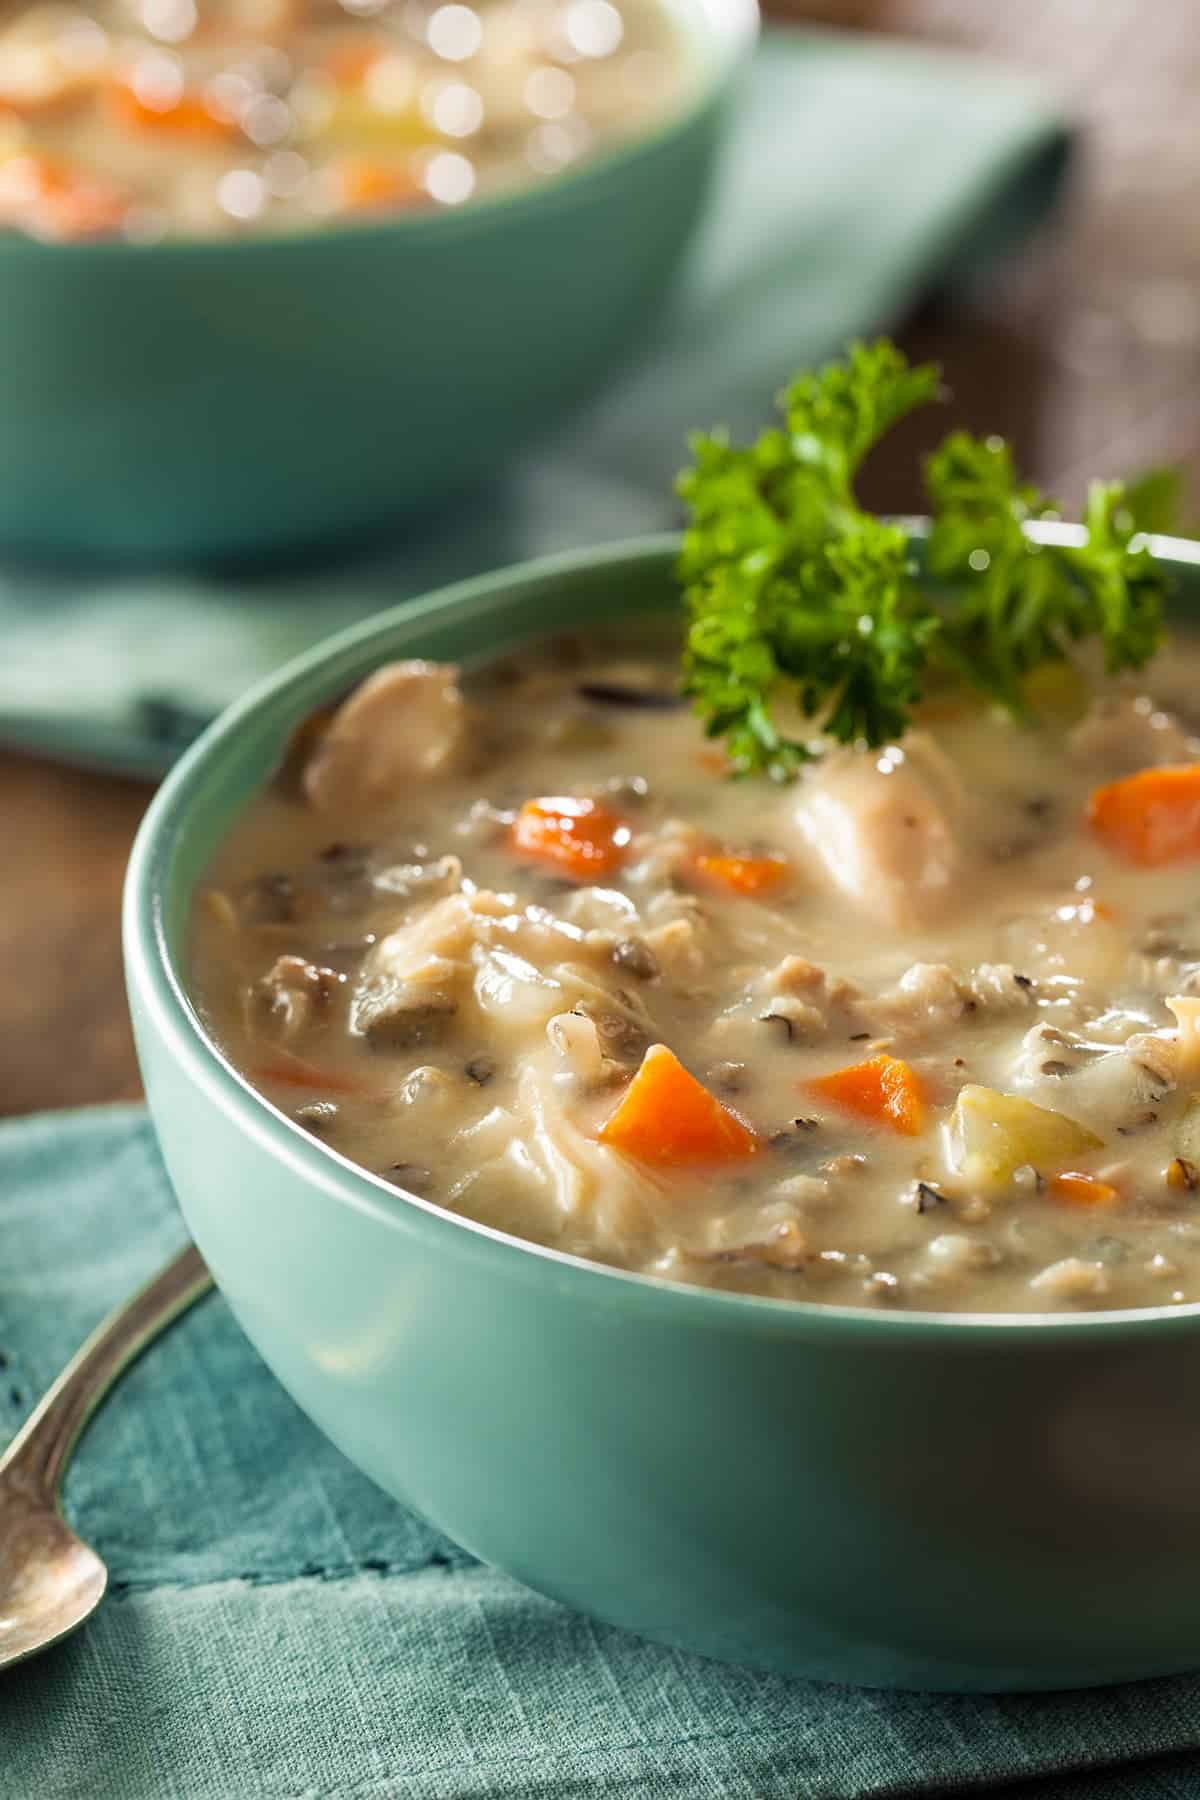 Texture Closeup of Creamy Chicken and wild rice soup with aqua soup bowl and spoon on wood board background.